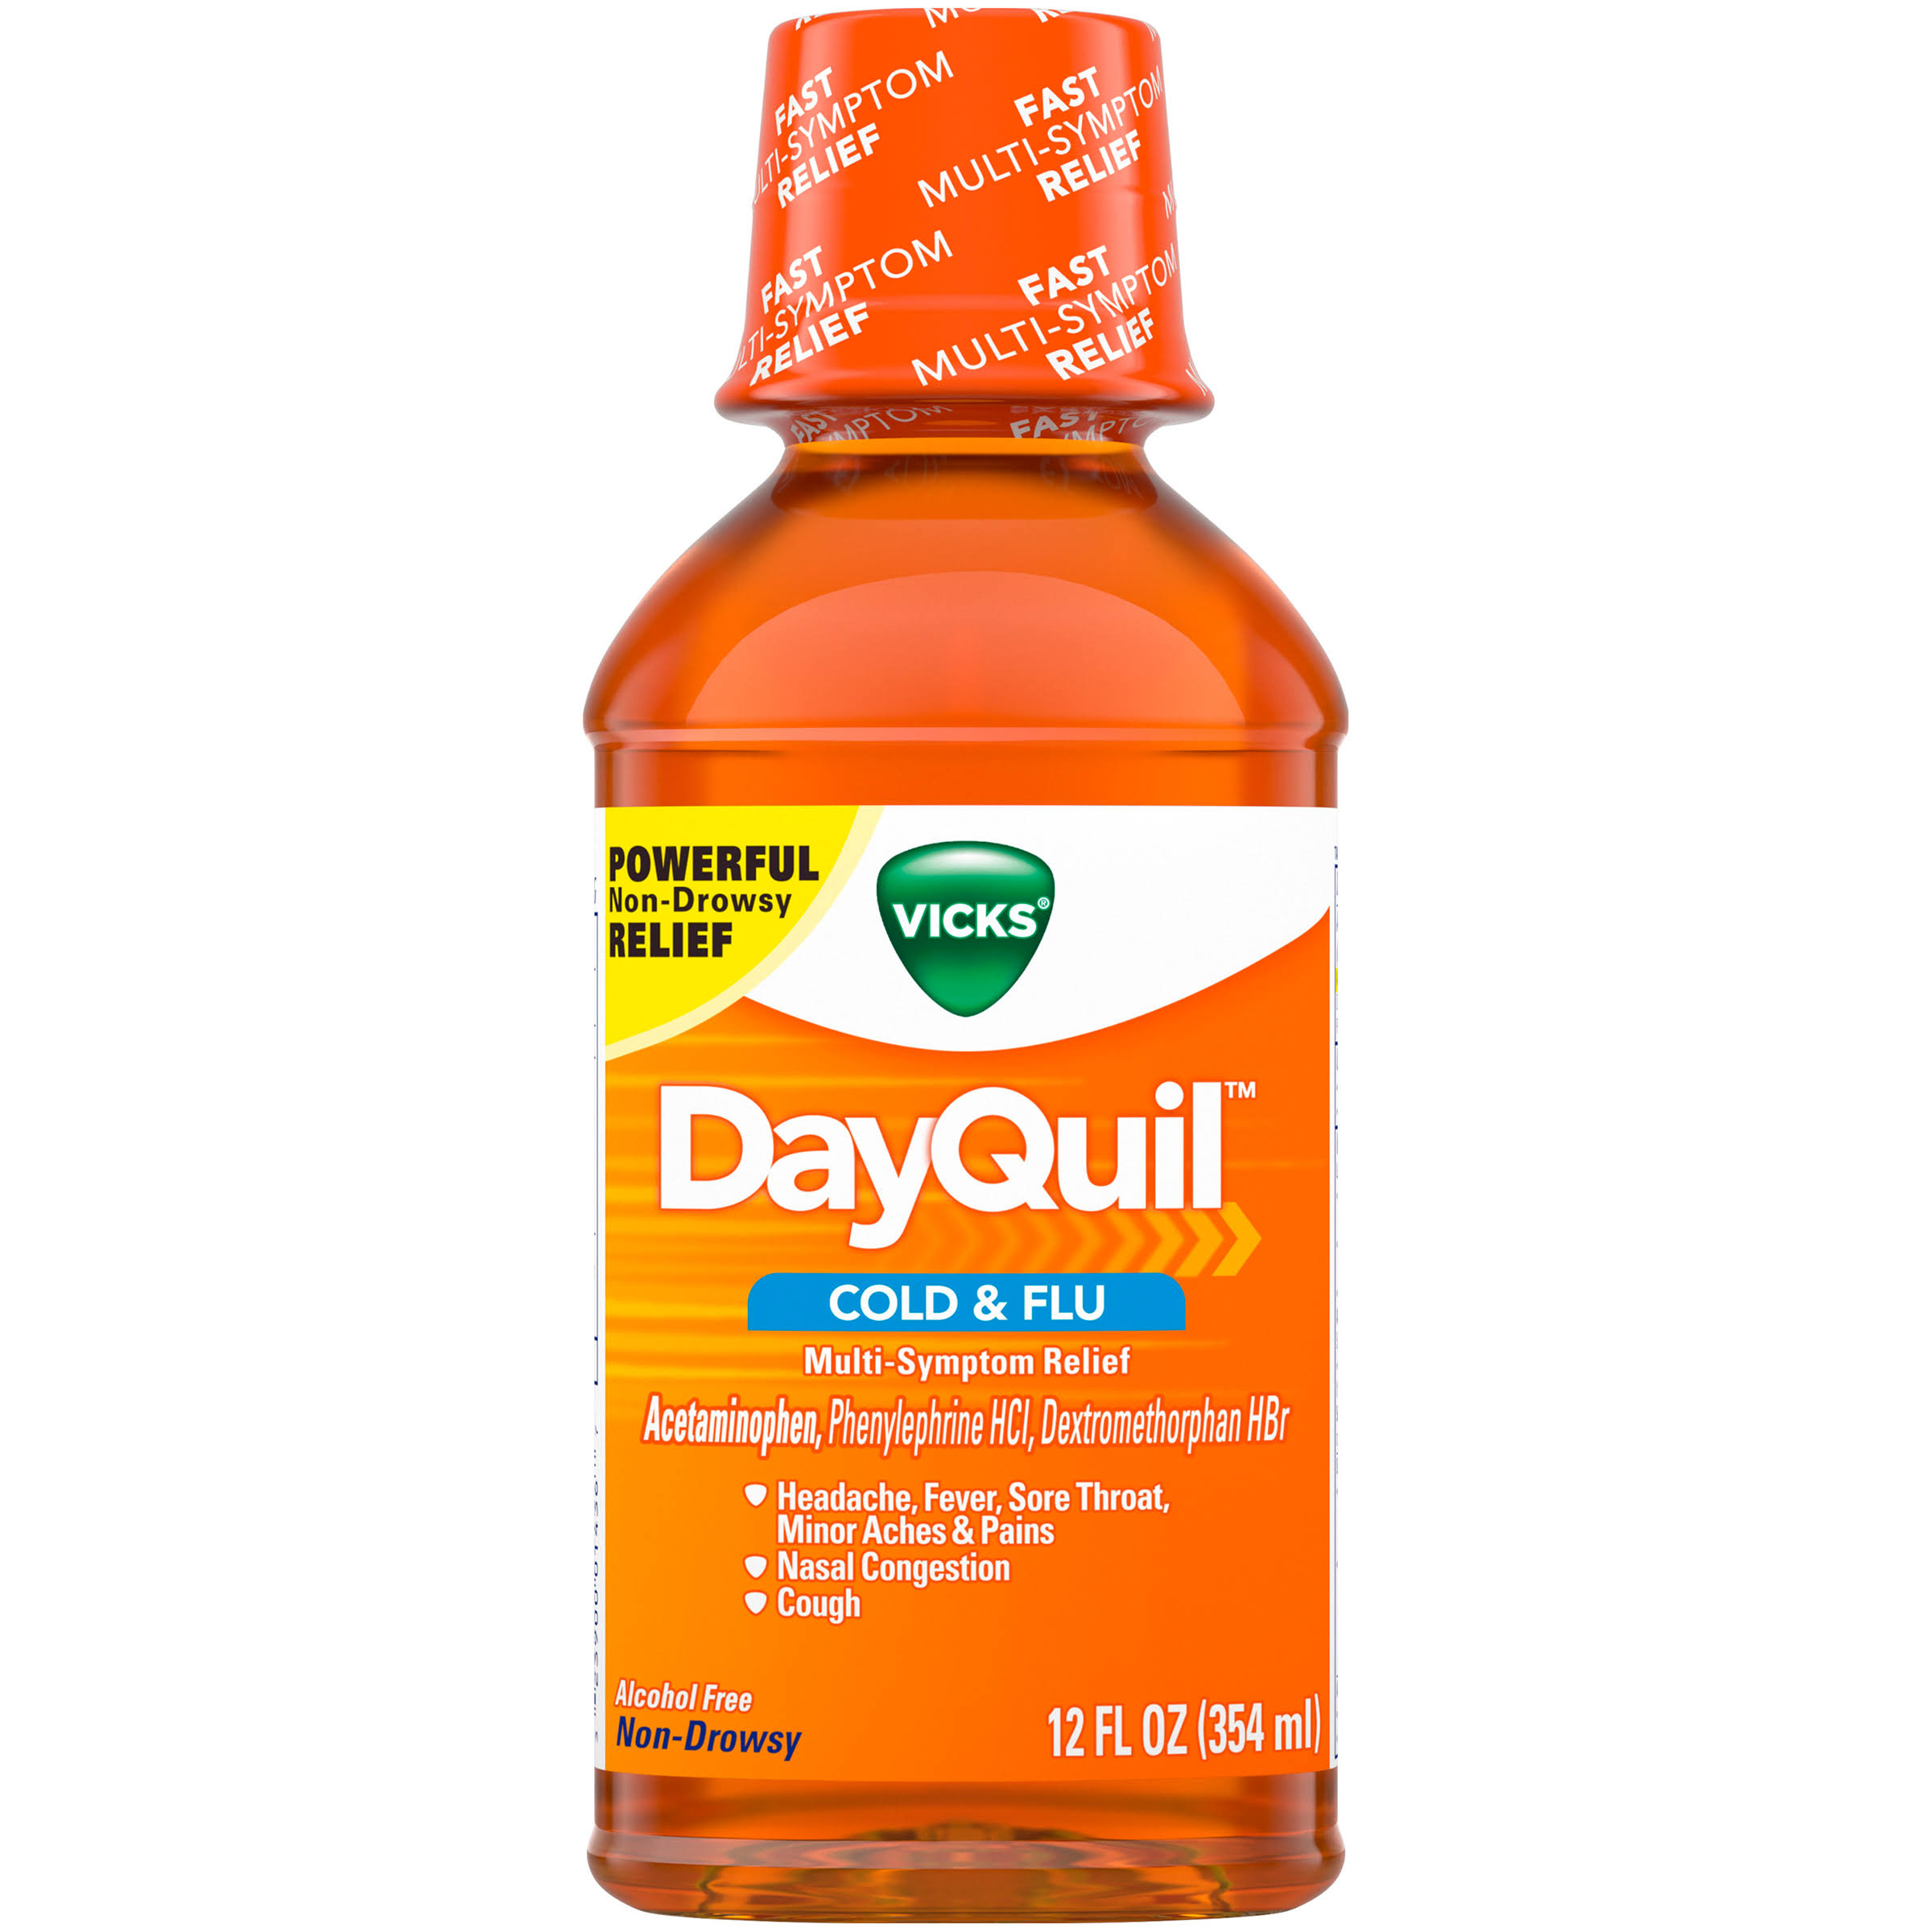 Vicks DayQuil Cold and Flu Medicine - 12oz